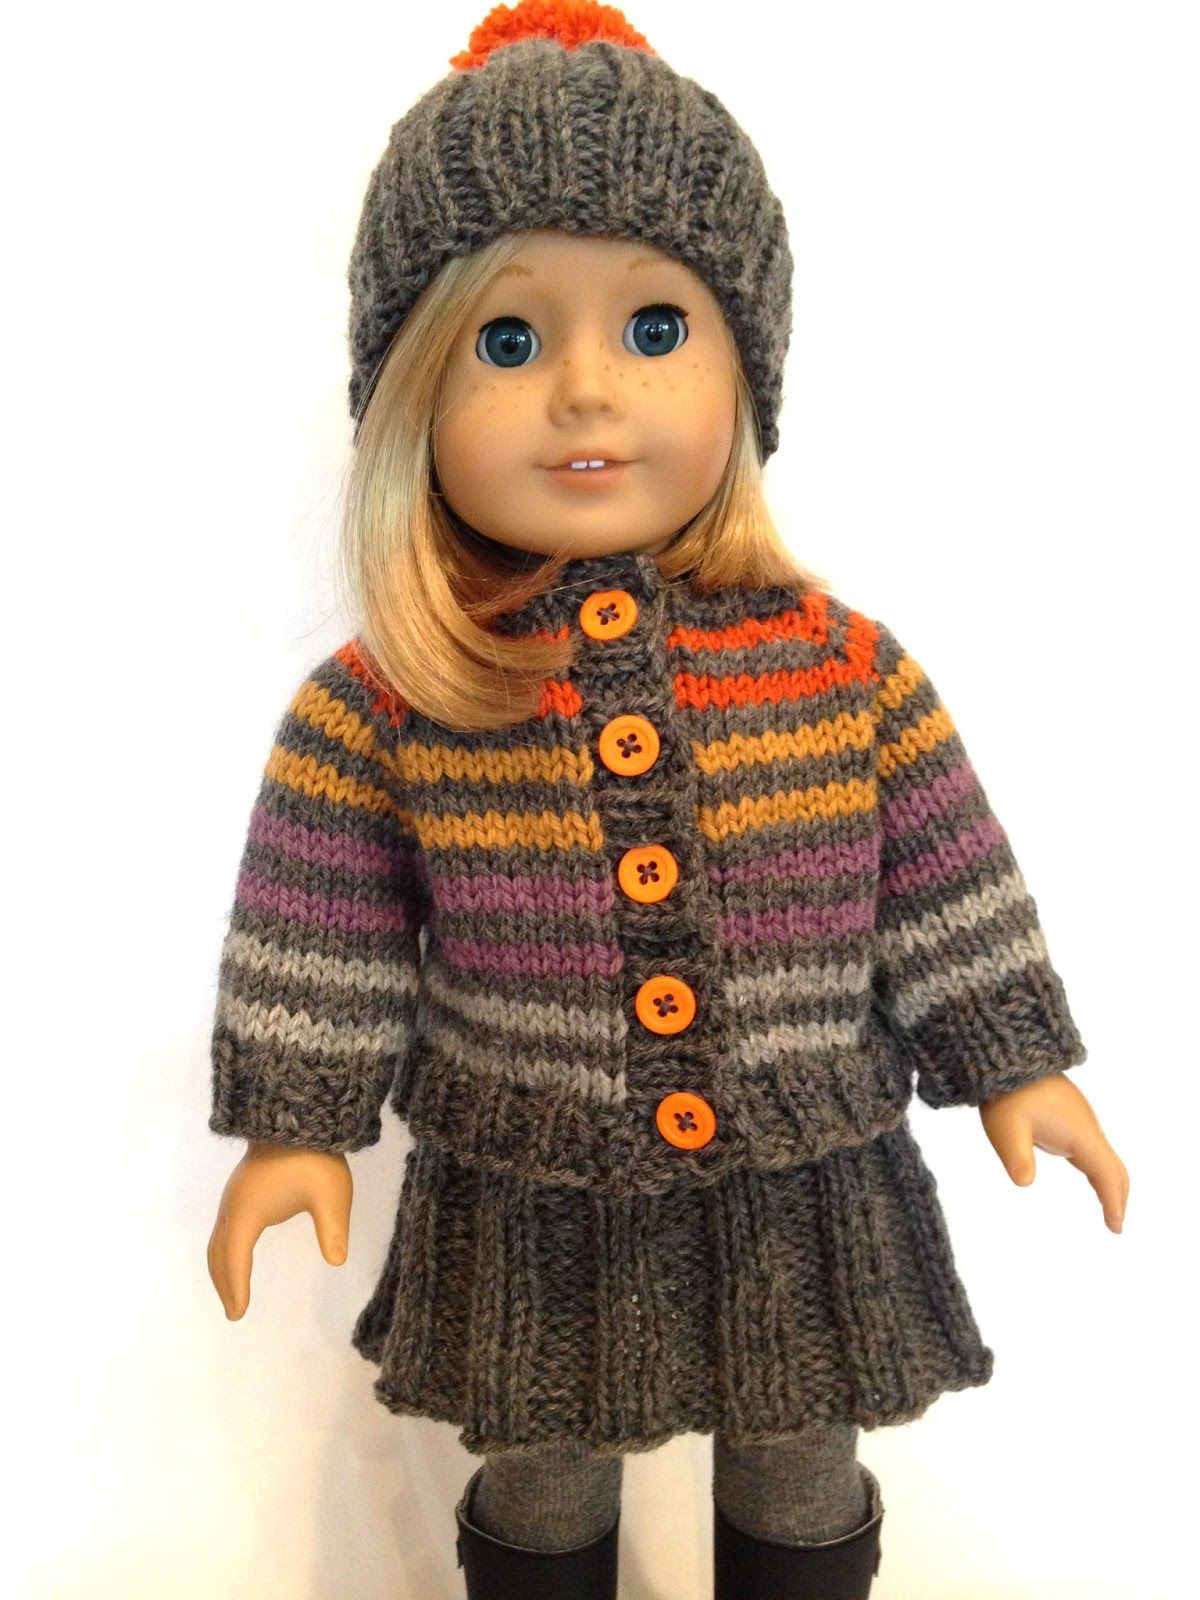 Knitting pattern for doll hat, sweater and skirt!! | Tutorials ...